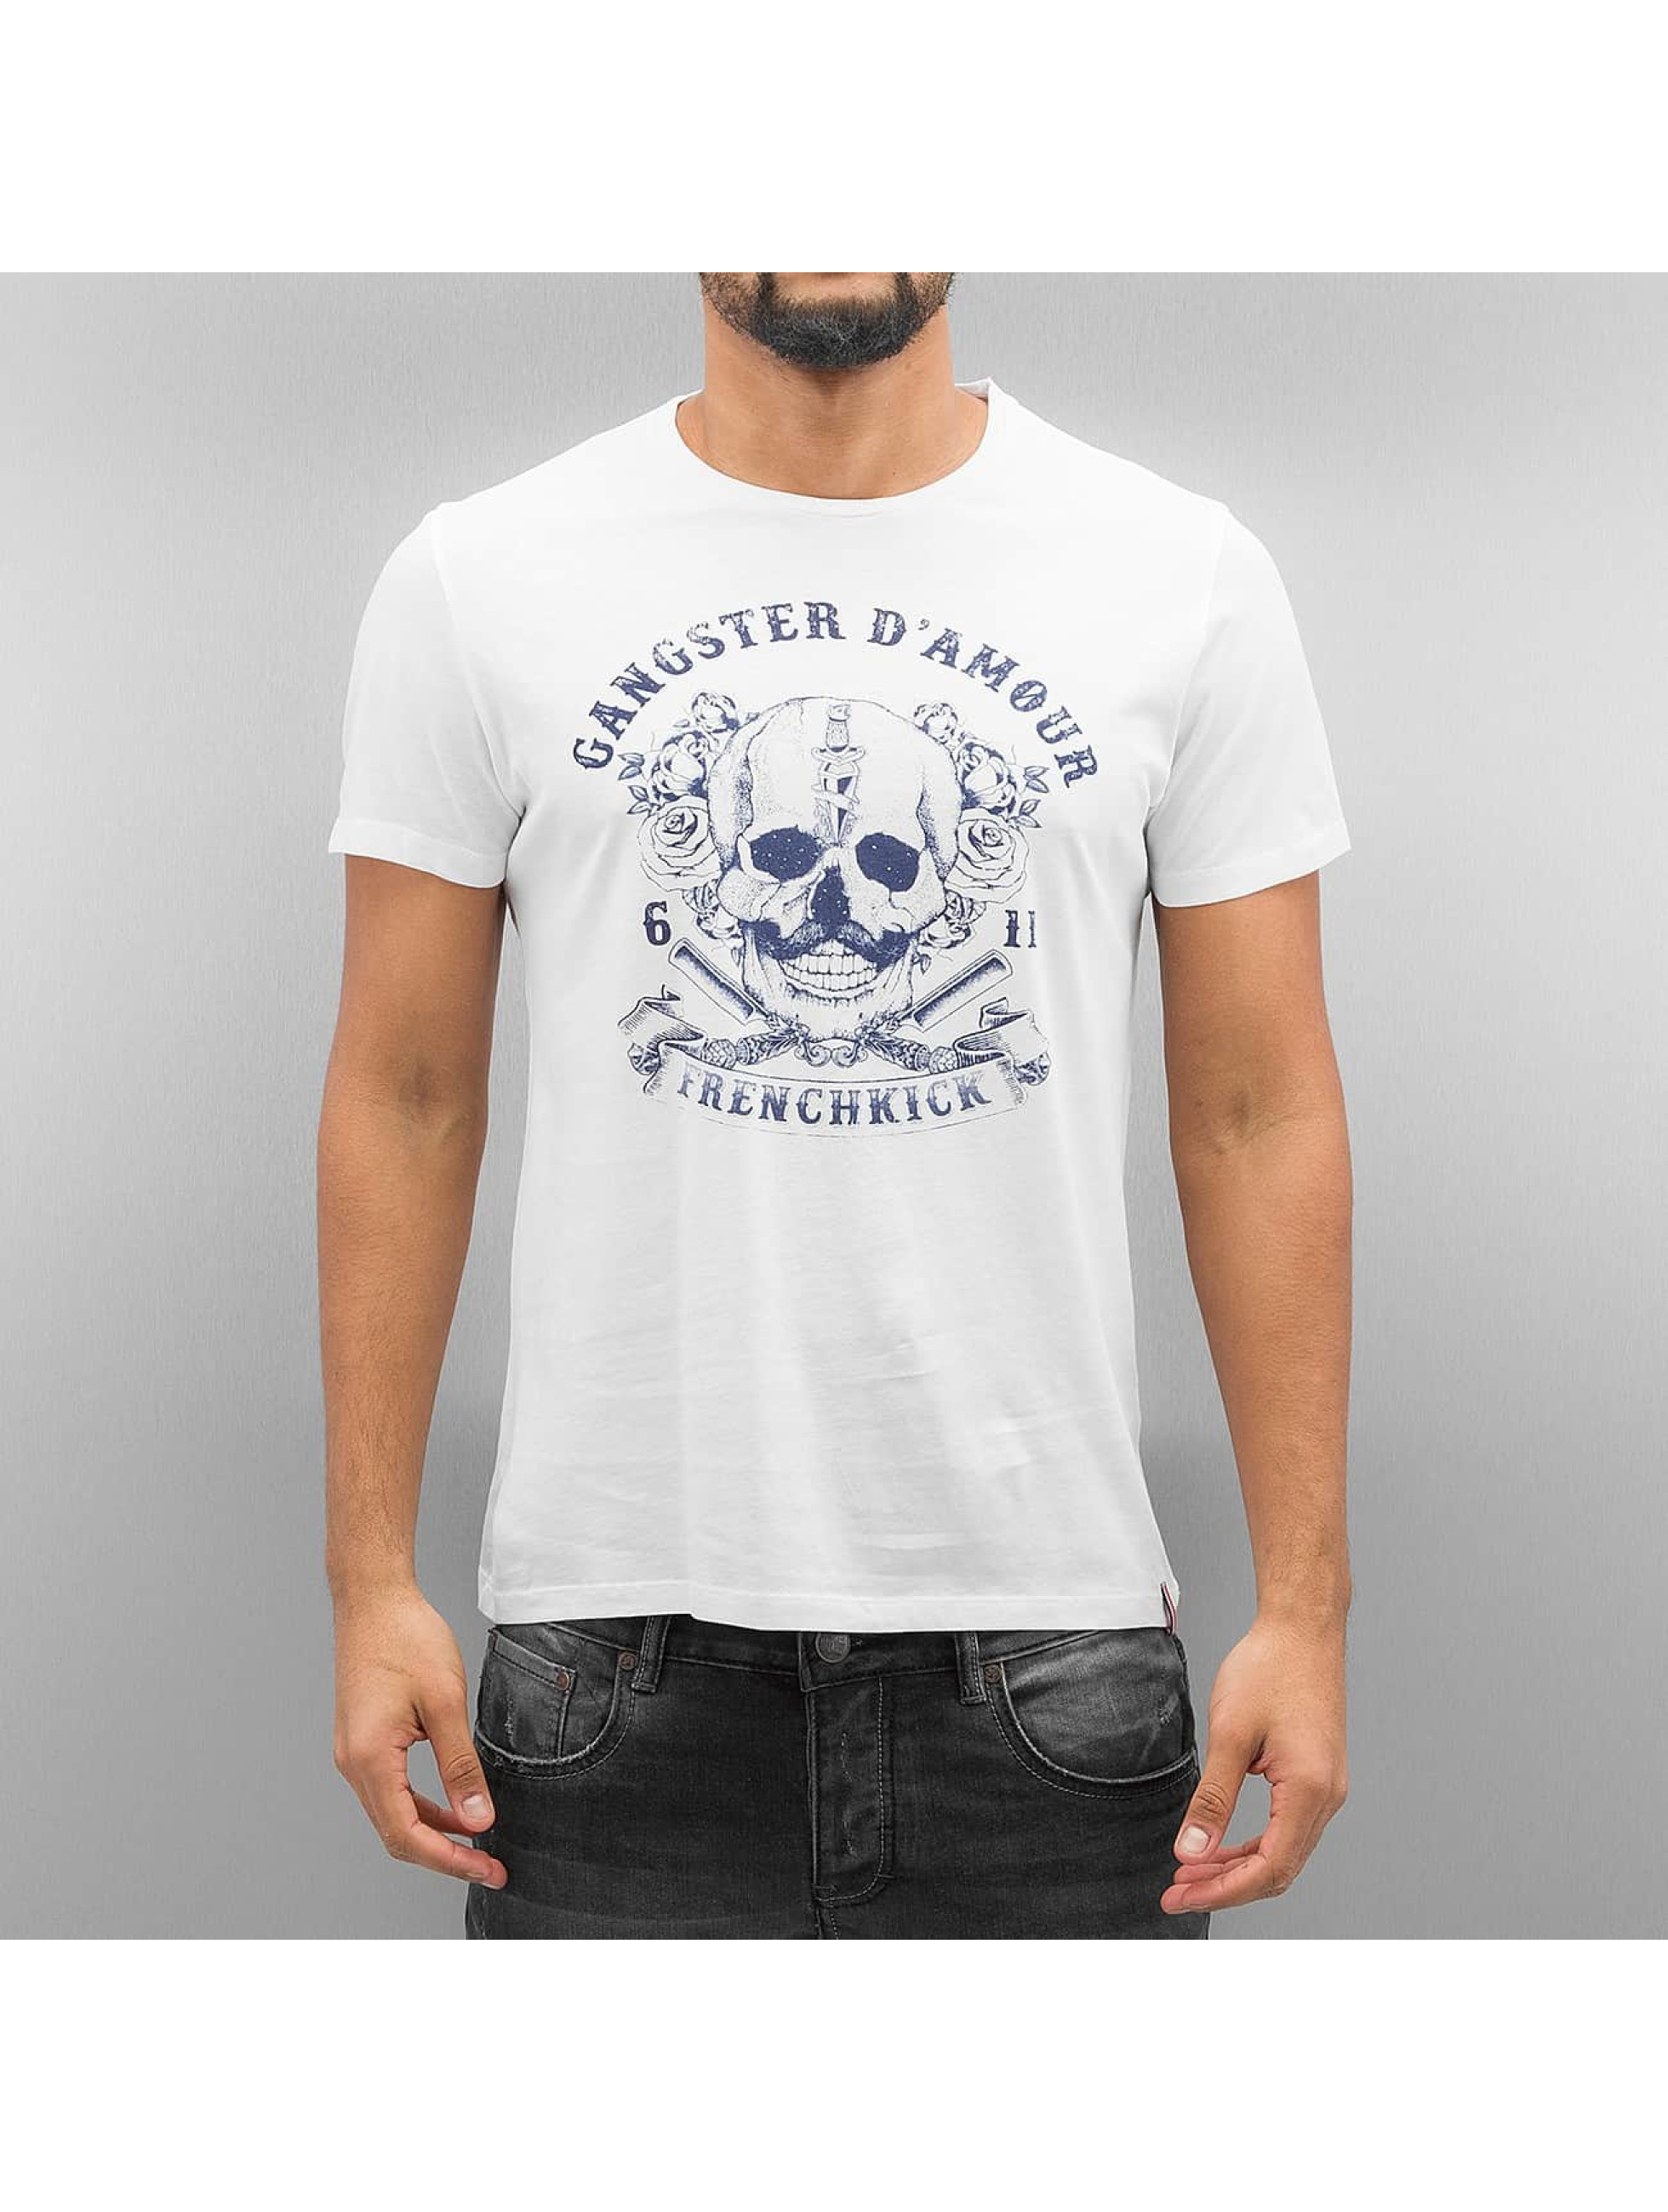 French Kick Männer T-Shirt Amphitryon in weiß